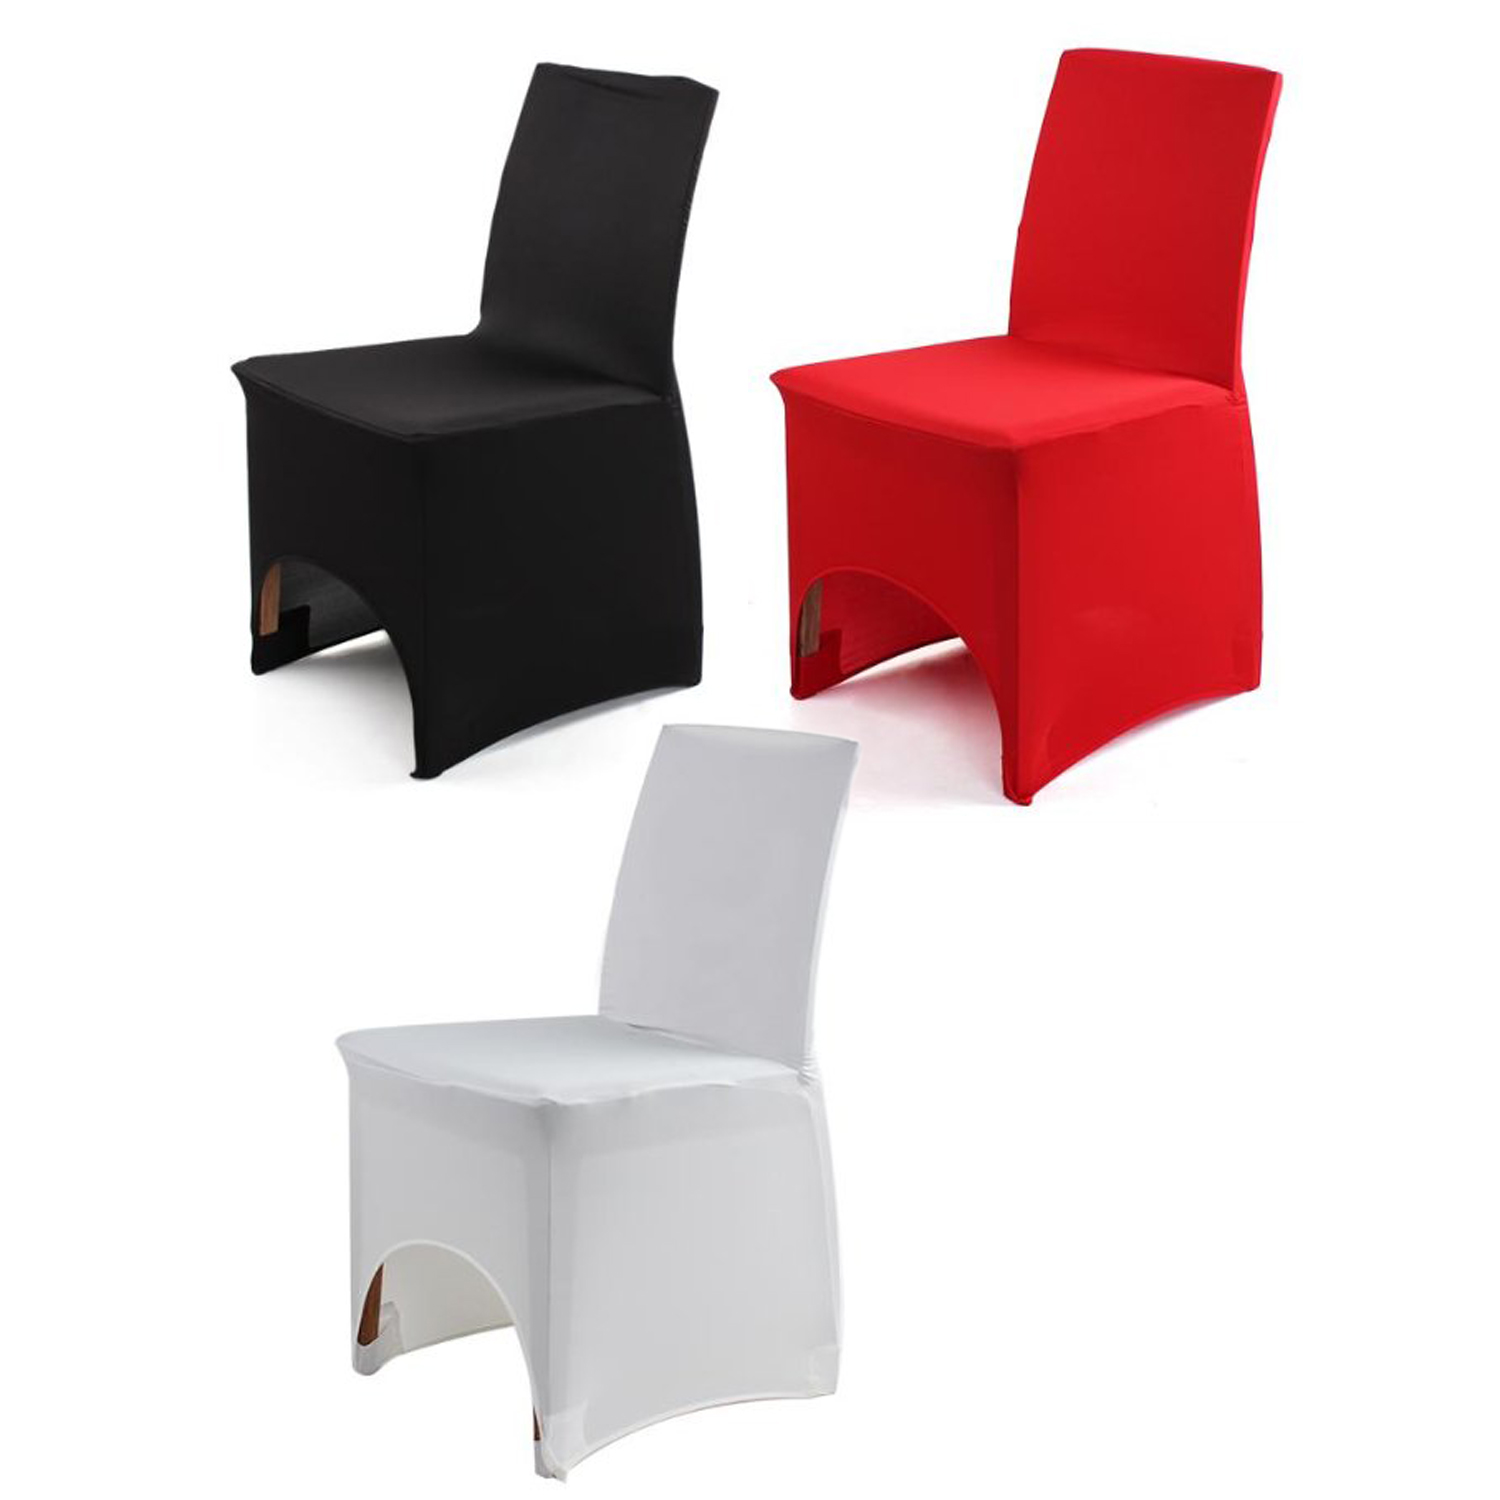 housse de chaise en lycra extensible deco mariage anniversaire fete h4p8 ebay. Black Bedroom Furniture Sets. Home Design Ideas